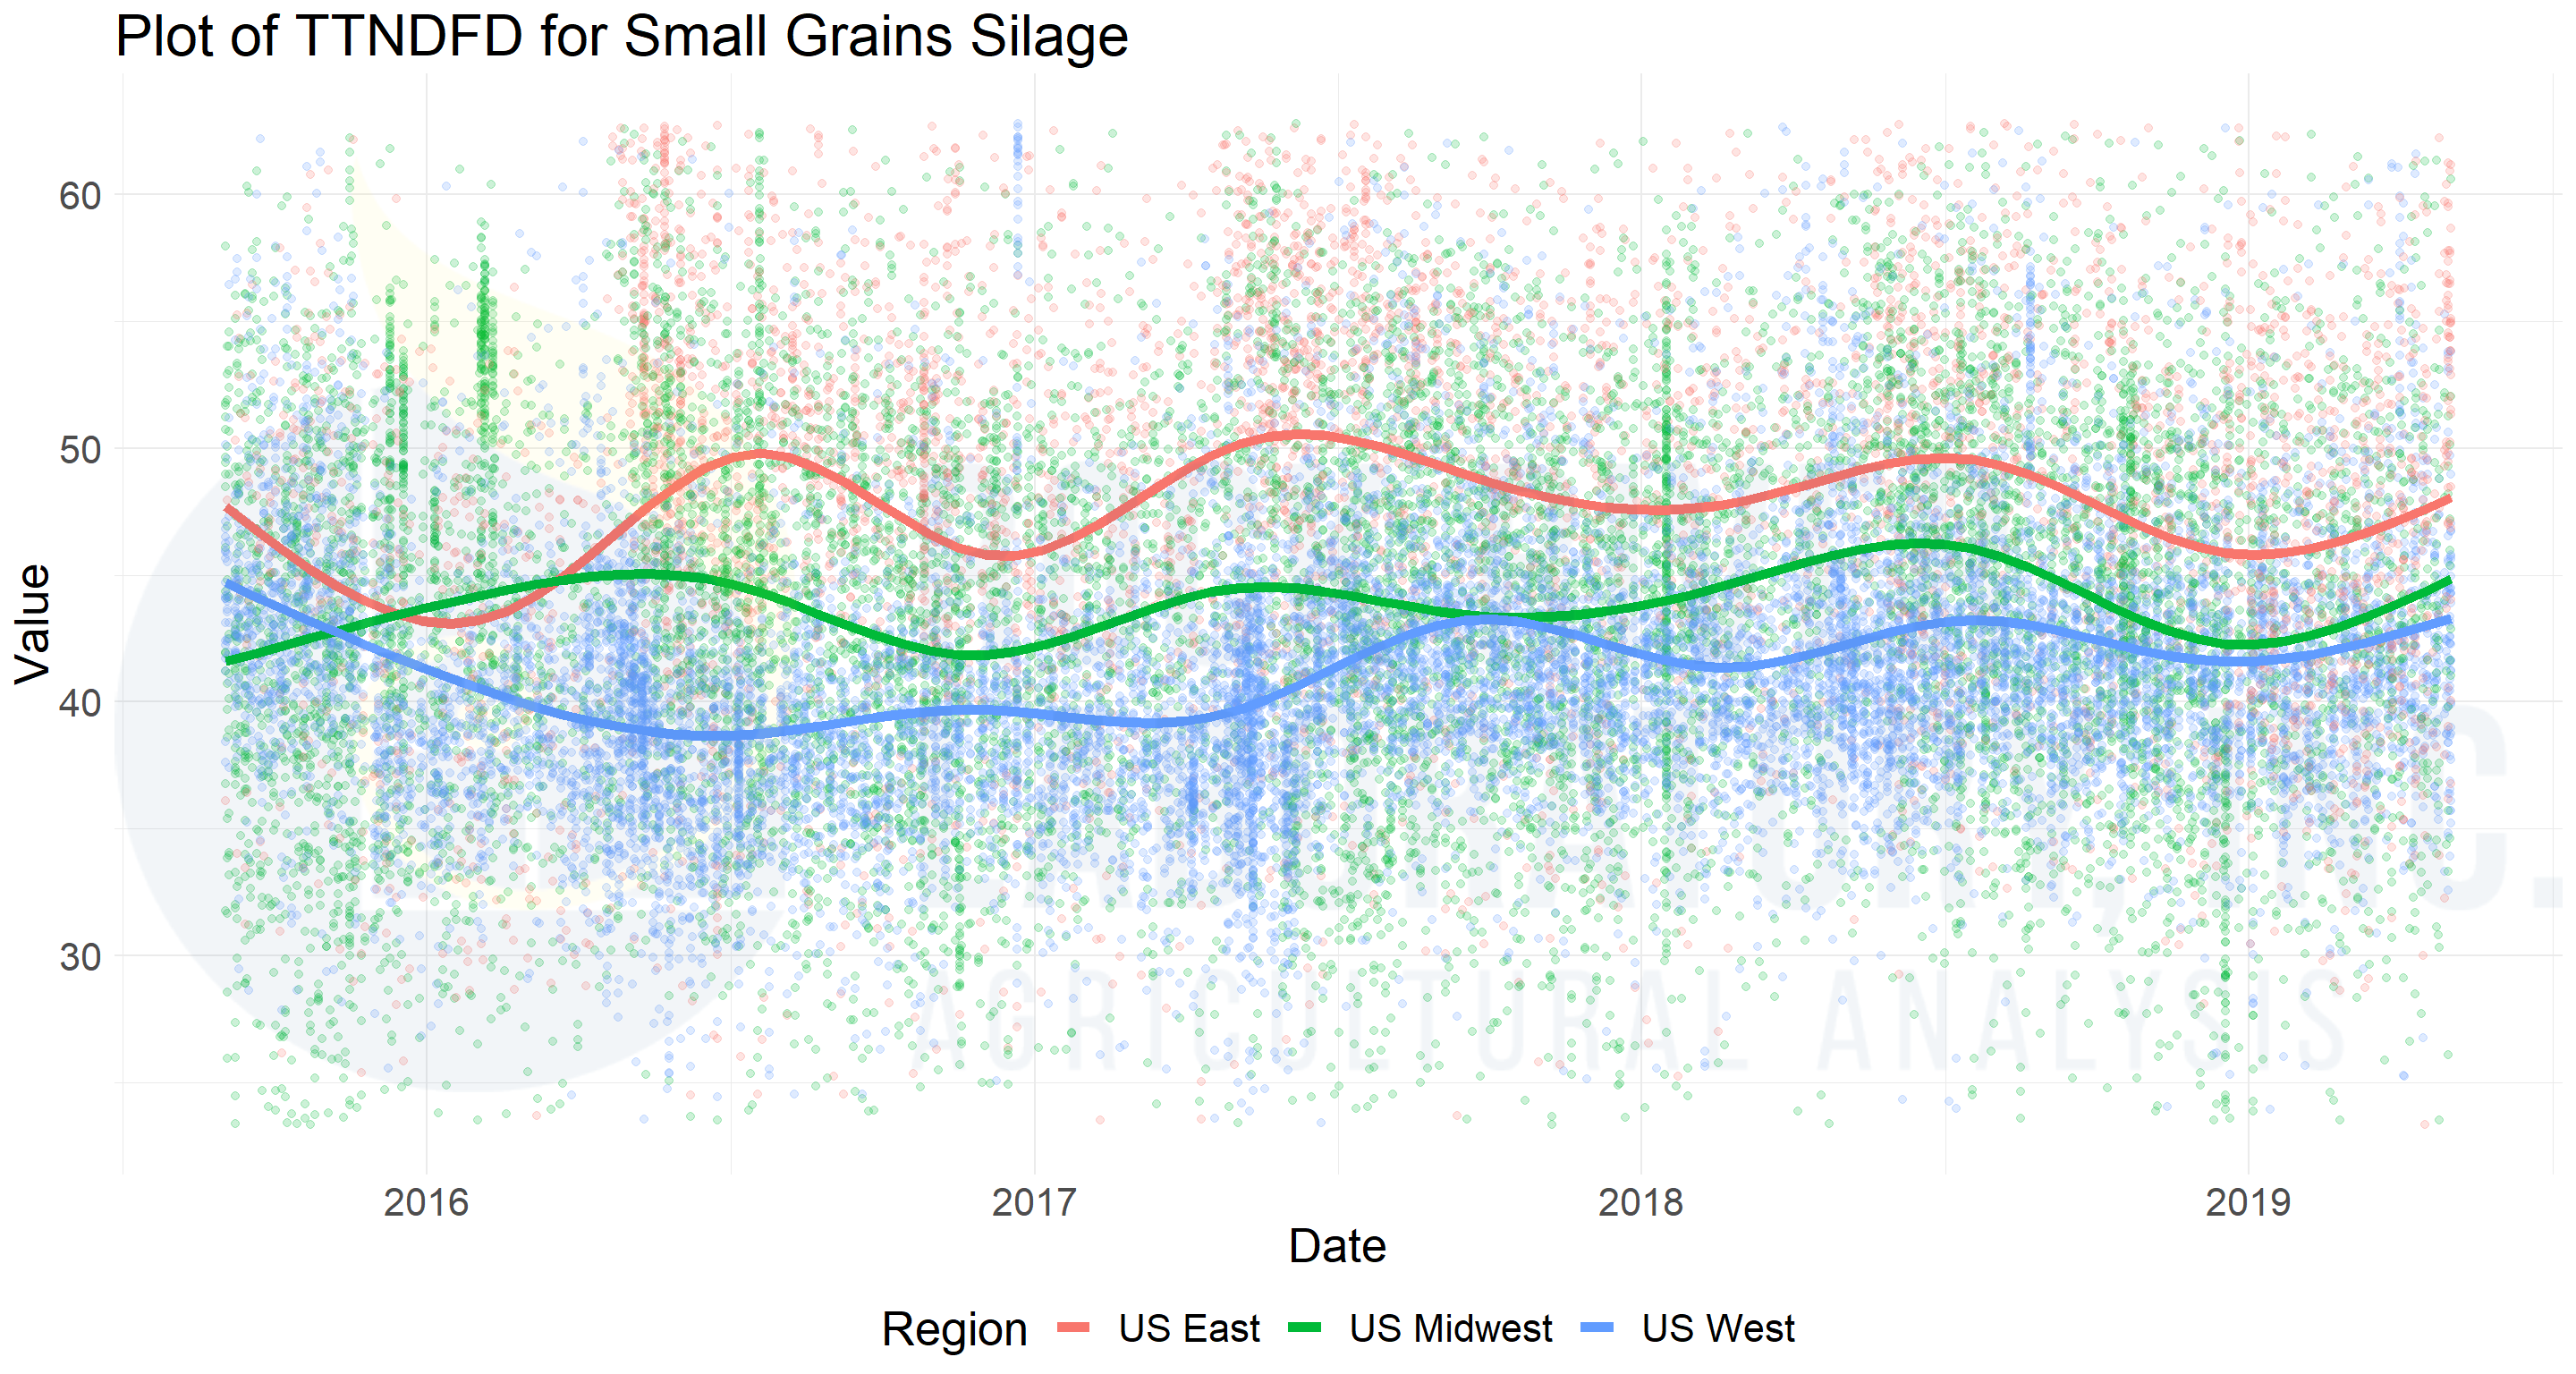 Figure 3_Plot of TTNDFD for Small Grains Silage_Rock River Laboratory database